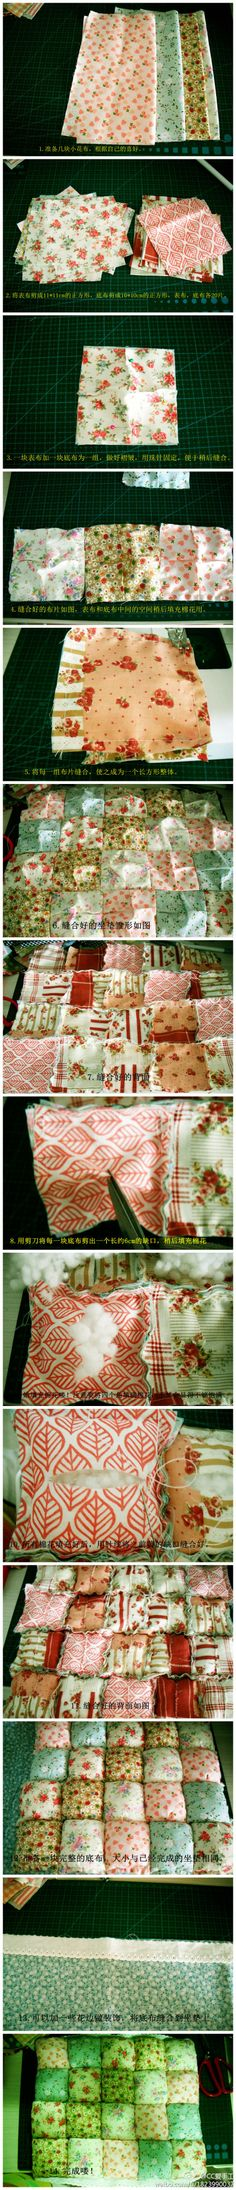 Bubble/Biscuit/Puff Quilt  or Puff cushion ......... In the center of the square, make a knife pleat. Someone makes the box pleat.